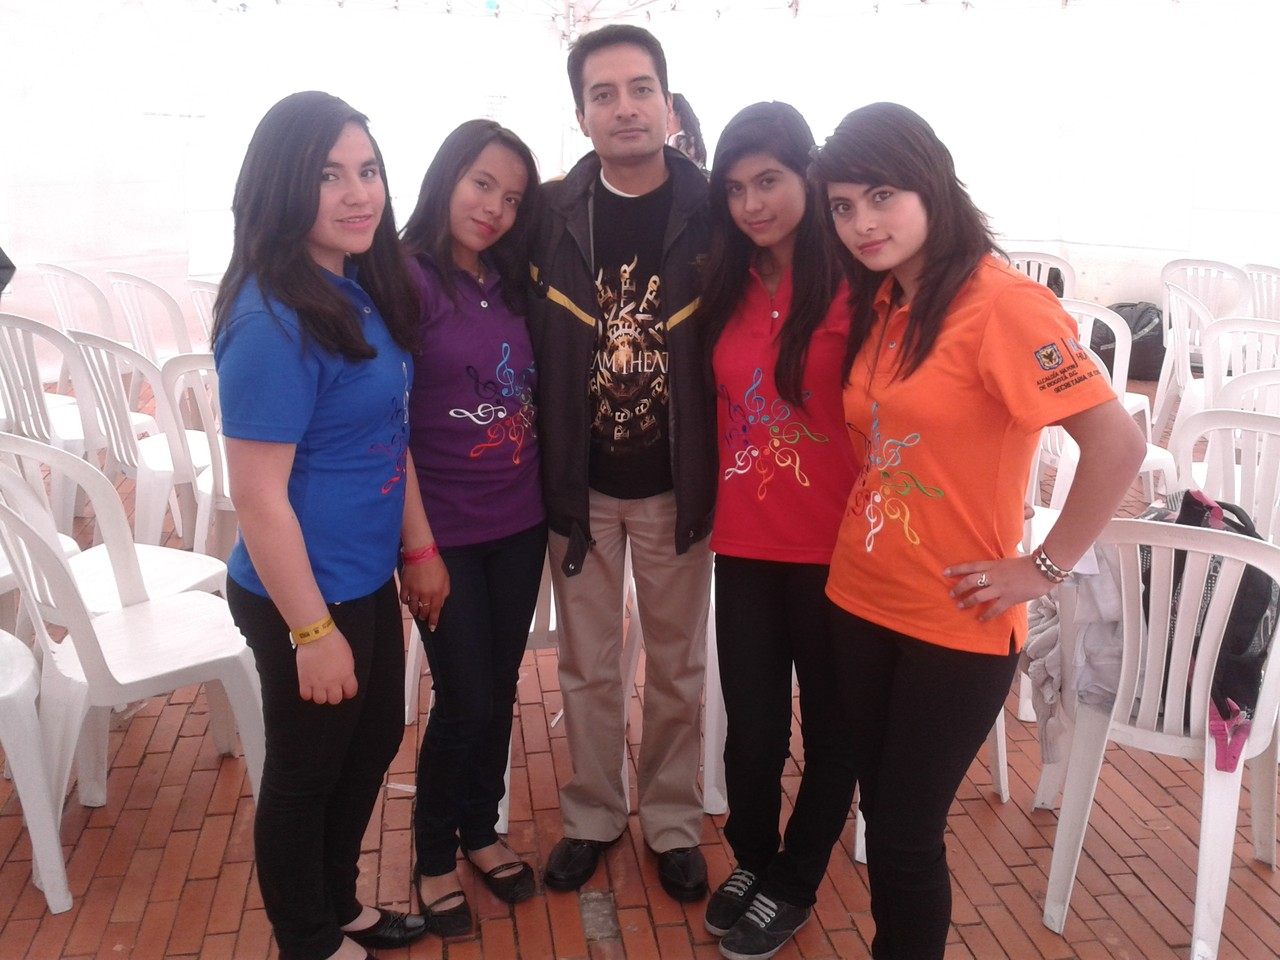 Domingo 25 de Agosto de 2013 TEATRO MAYOR JULIO MARIO SANTODOMINGO